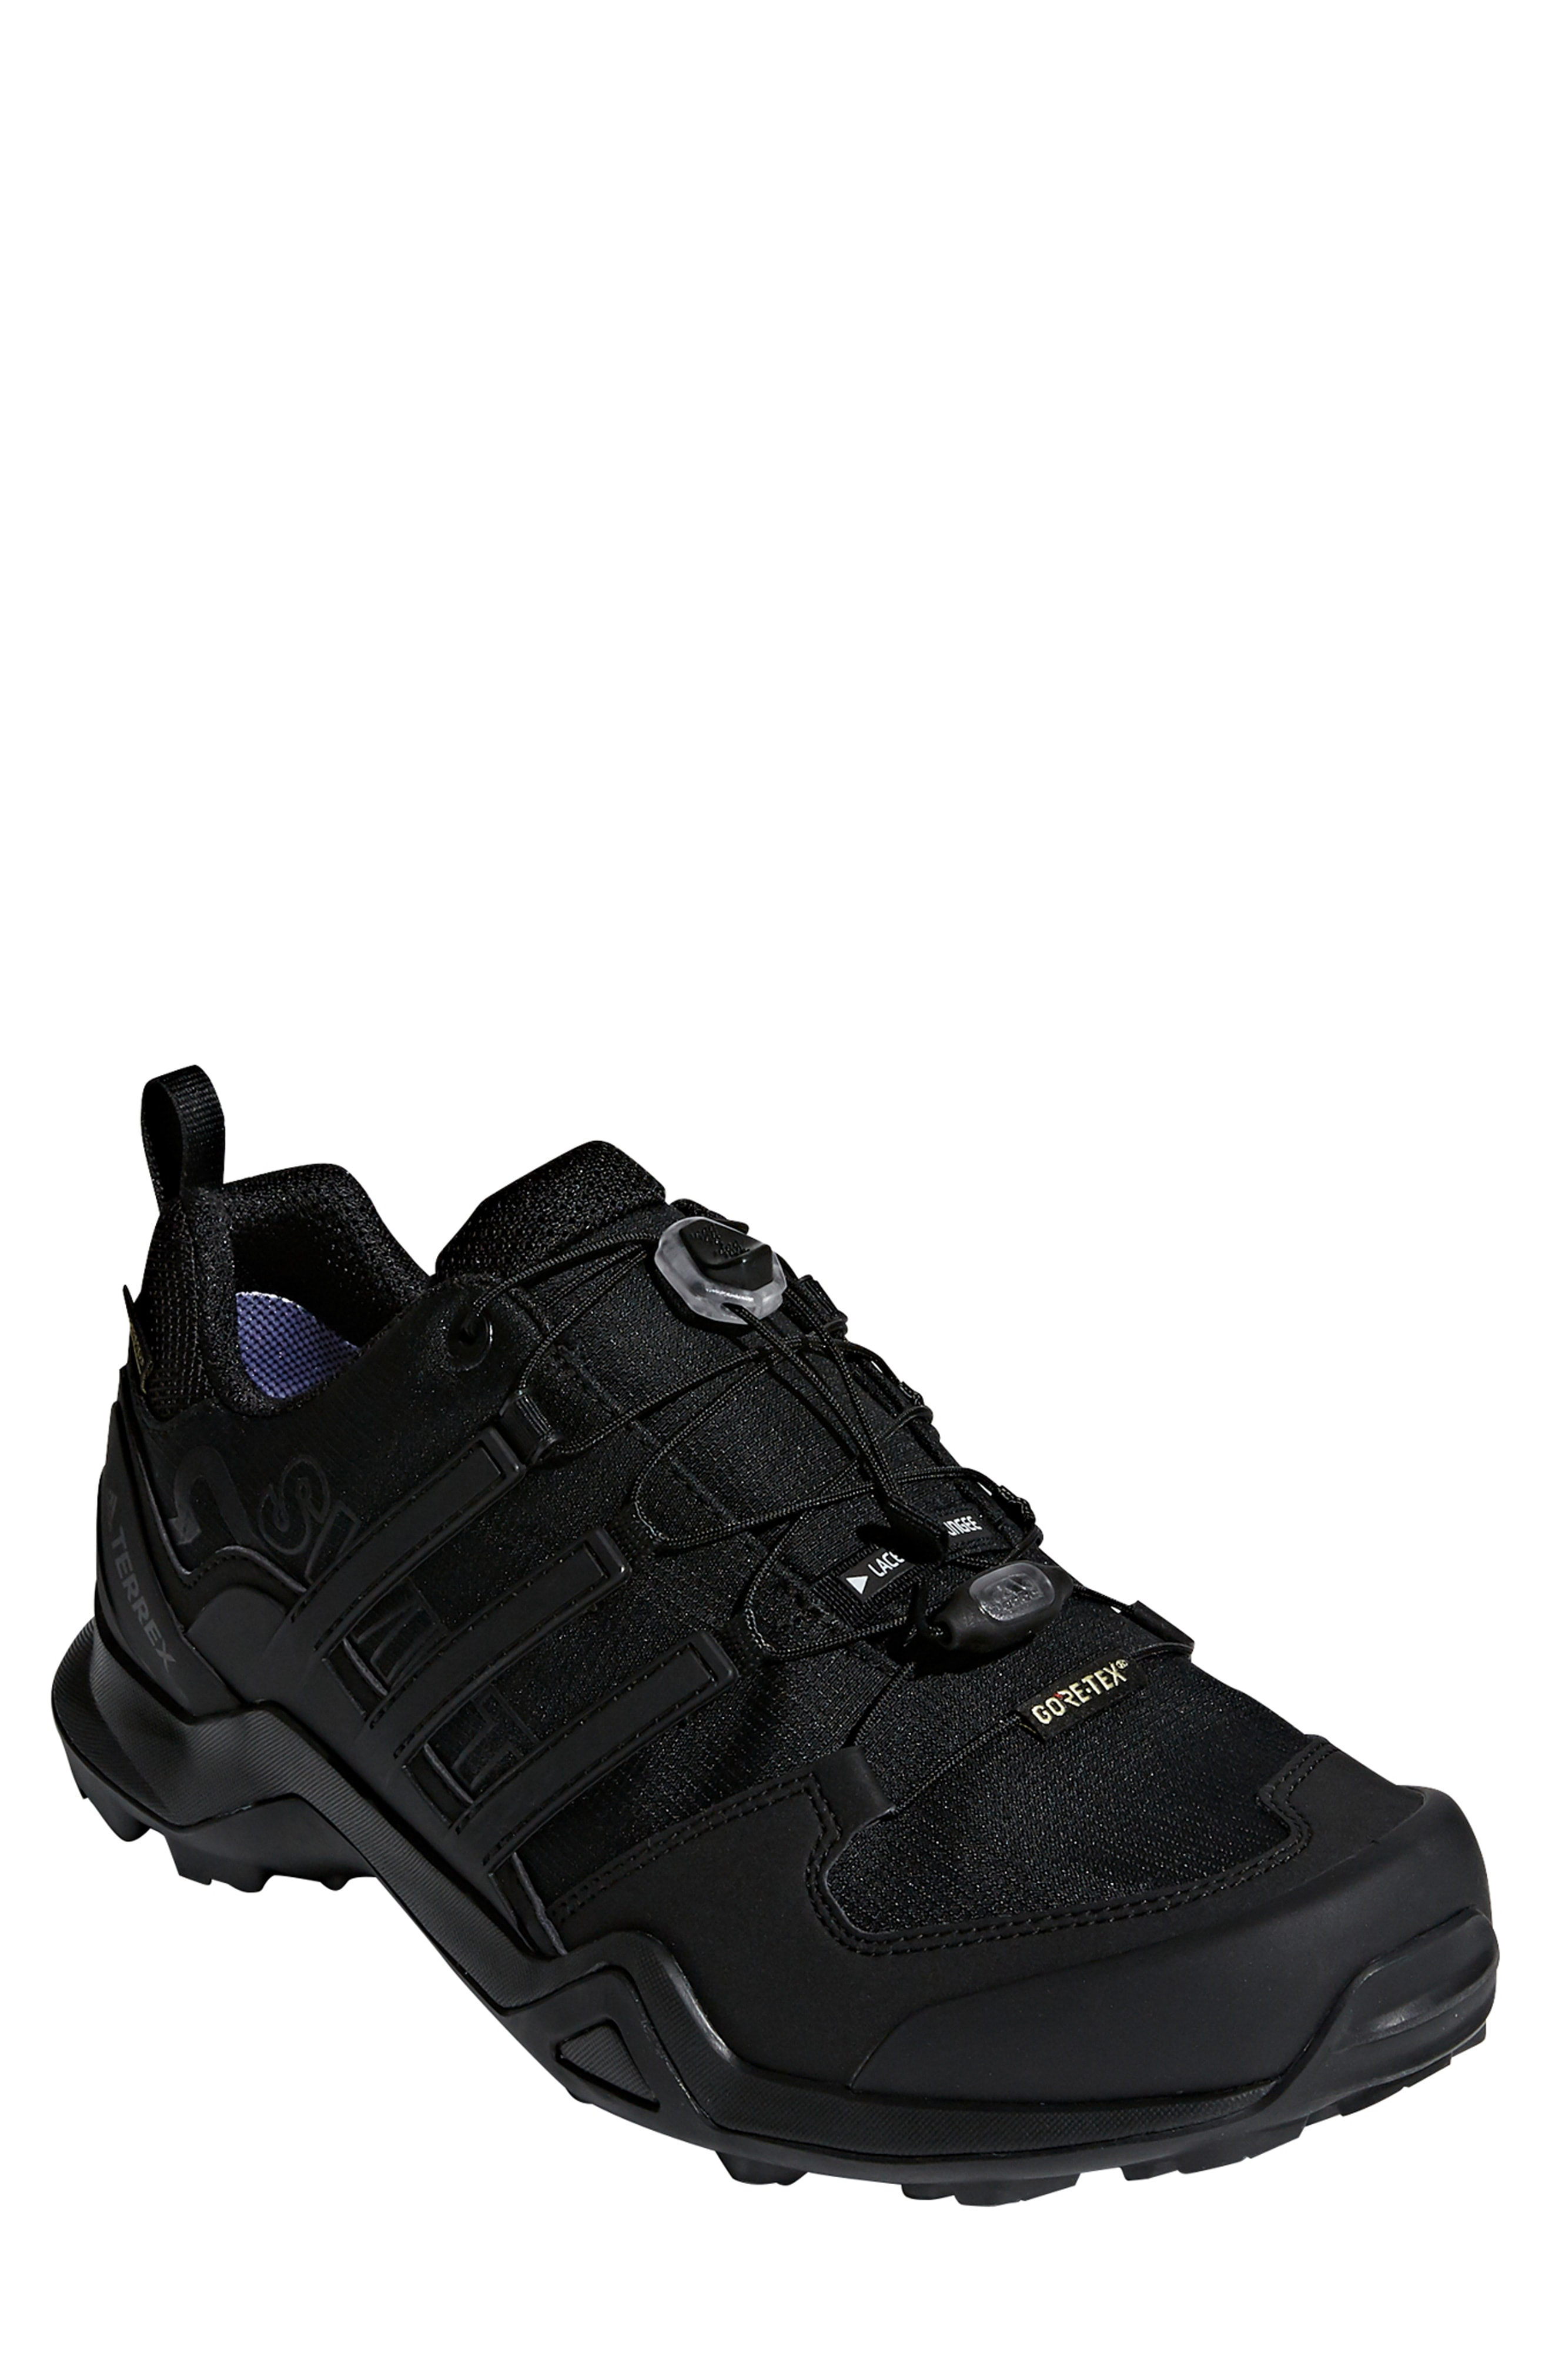 c7adb7d6dc9 ADIDAS ORIGINALS. Terrex Swift R2 Gtx Gore-Tex Waterproof Hiking Shoe ...